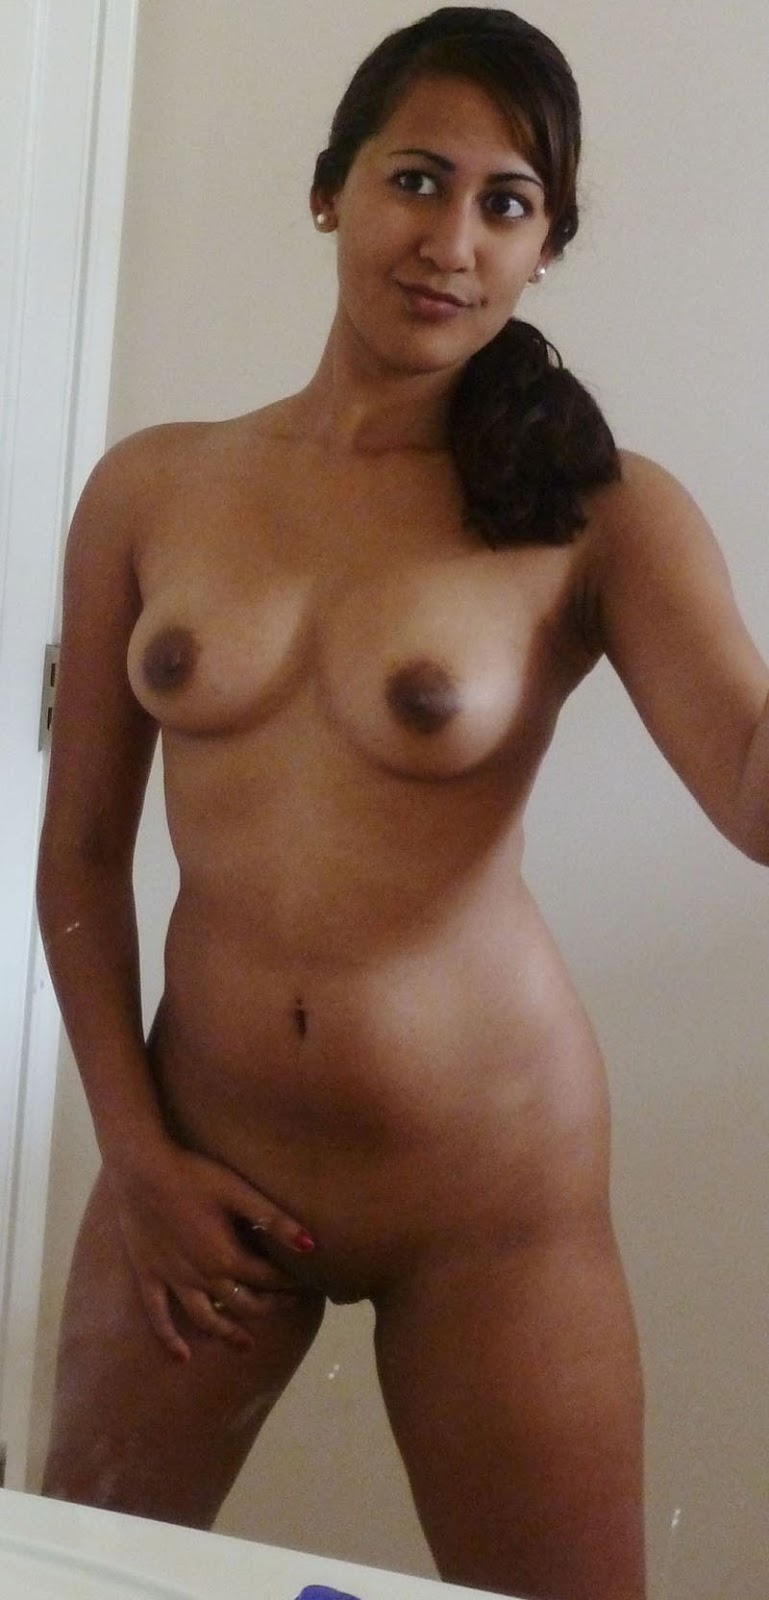 Desi Facebook Girl Naked Selfie Leaked Mast Figure - Best -5984